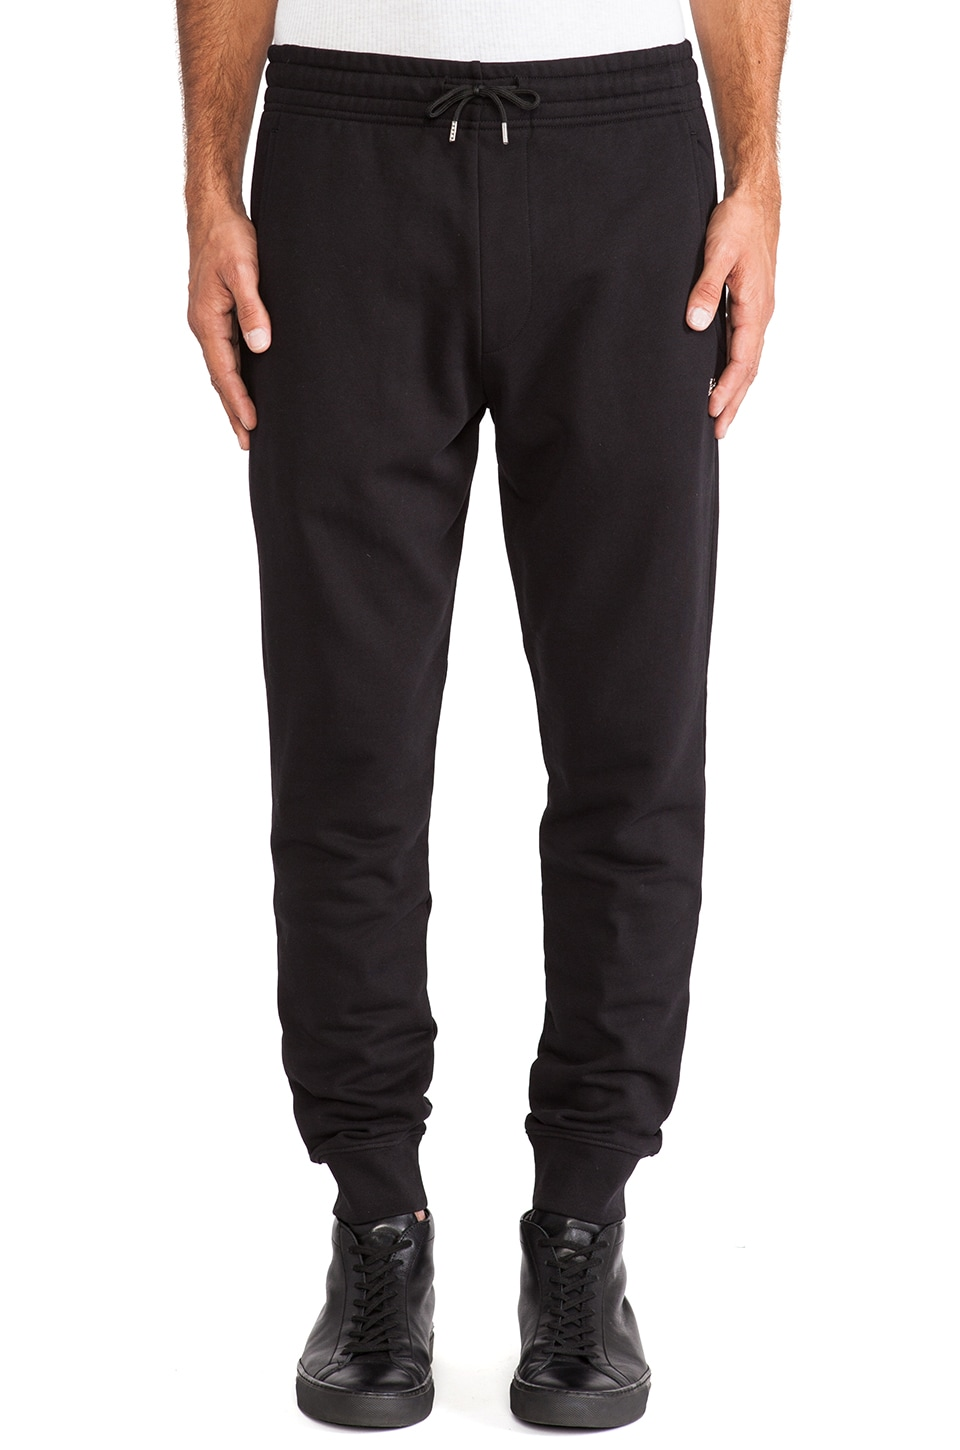 McQ Alexander McQueen Jogging Sweatpants in Darkest Black